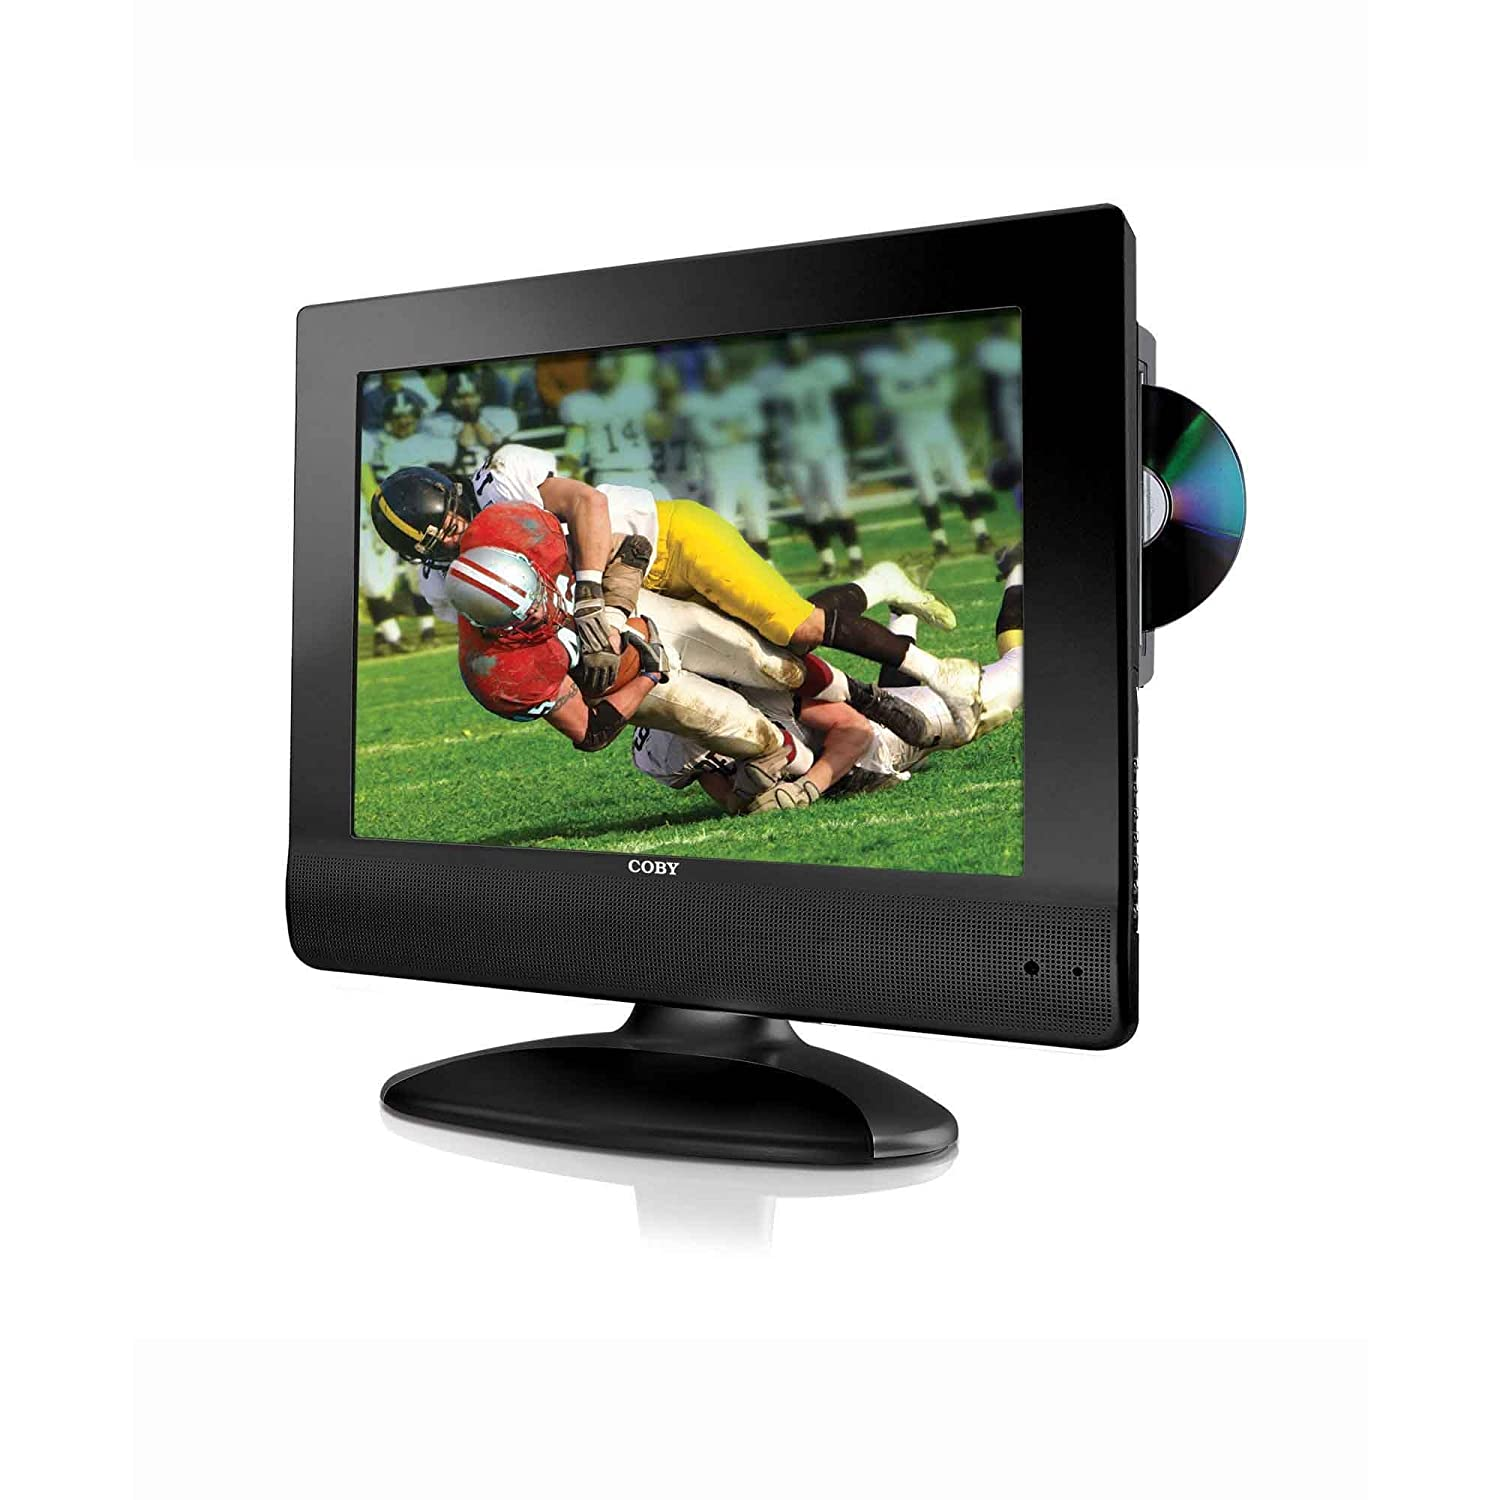 Amazon.com: Coby TF-DVD1591 15-Inch LCD TV with Built-in DVD Player:  Electronics